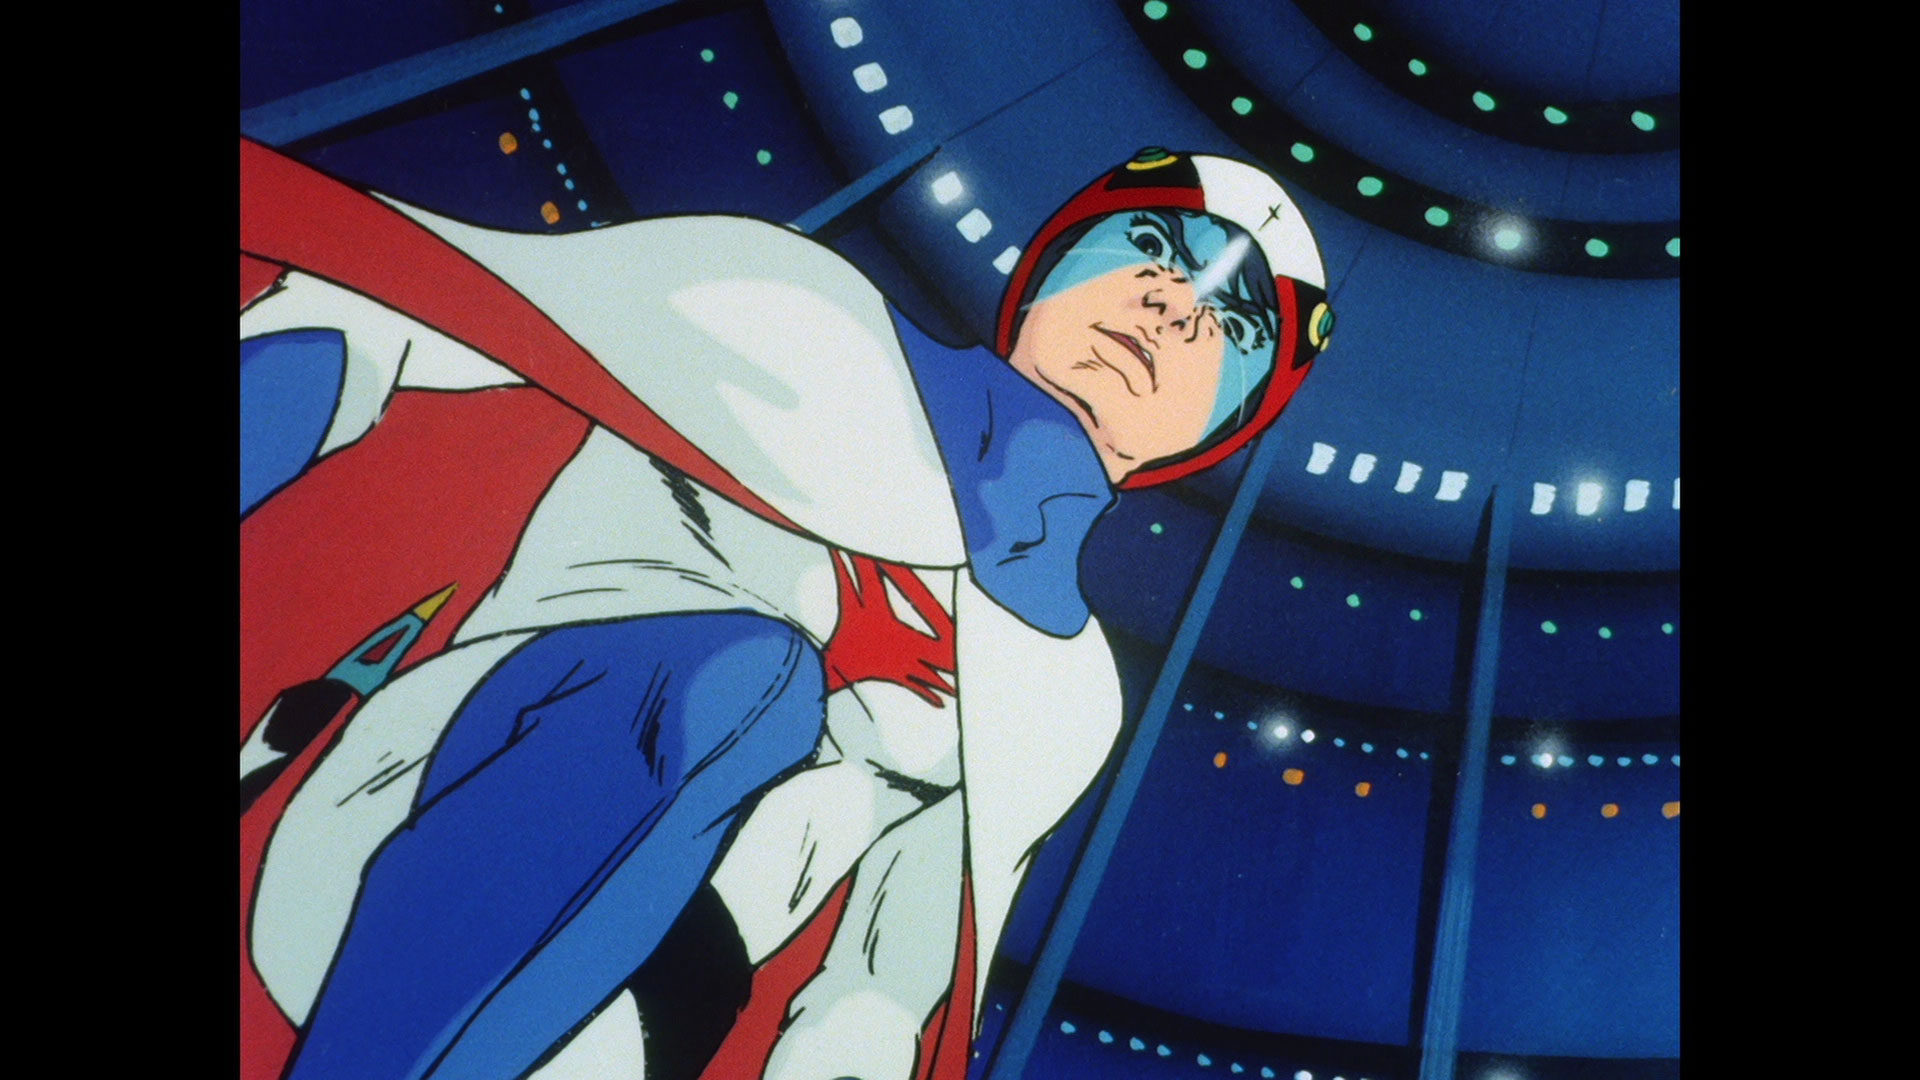 Gatchaman The Movie Blu-ray